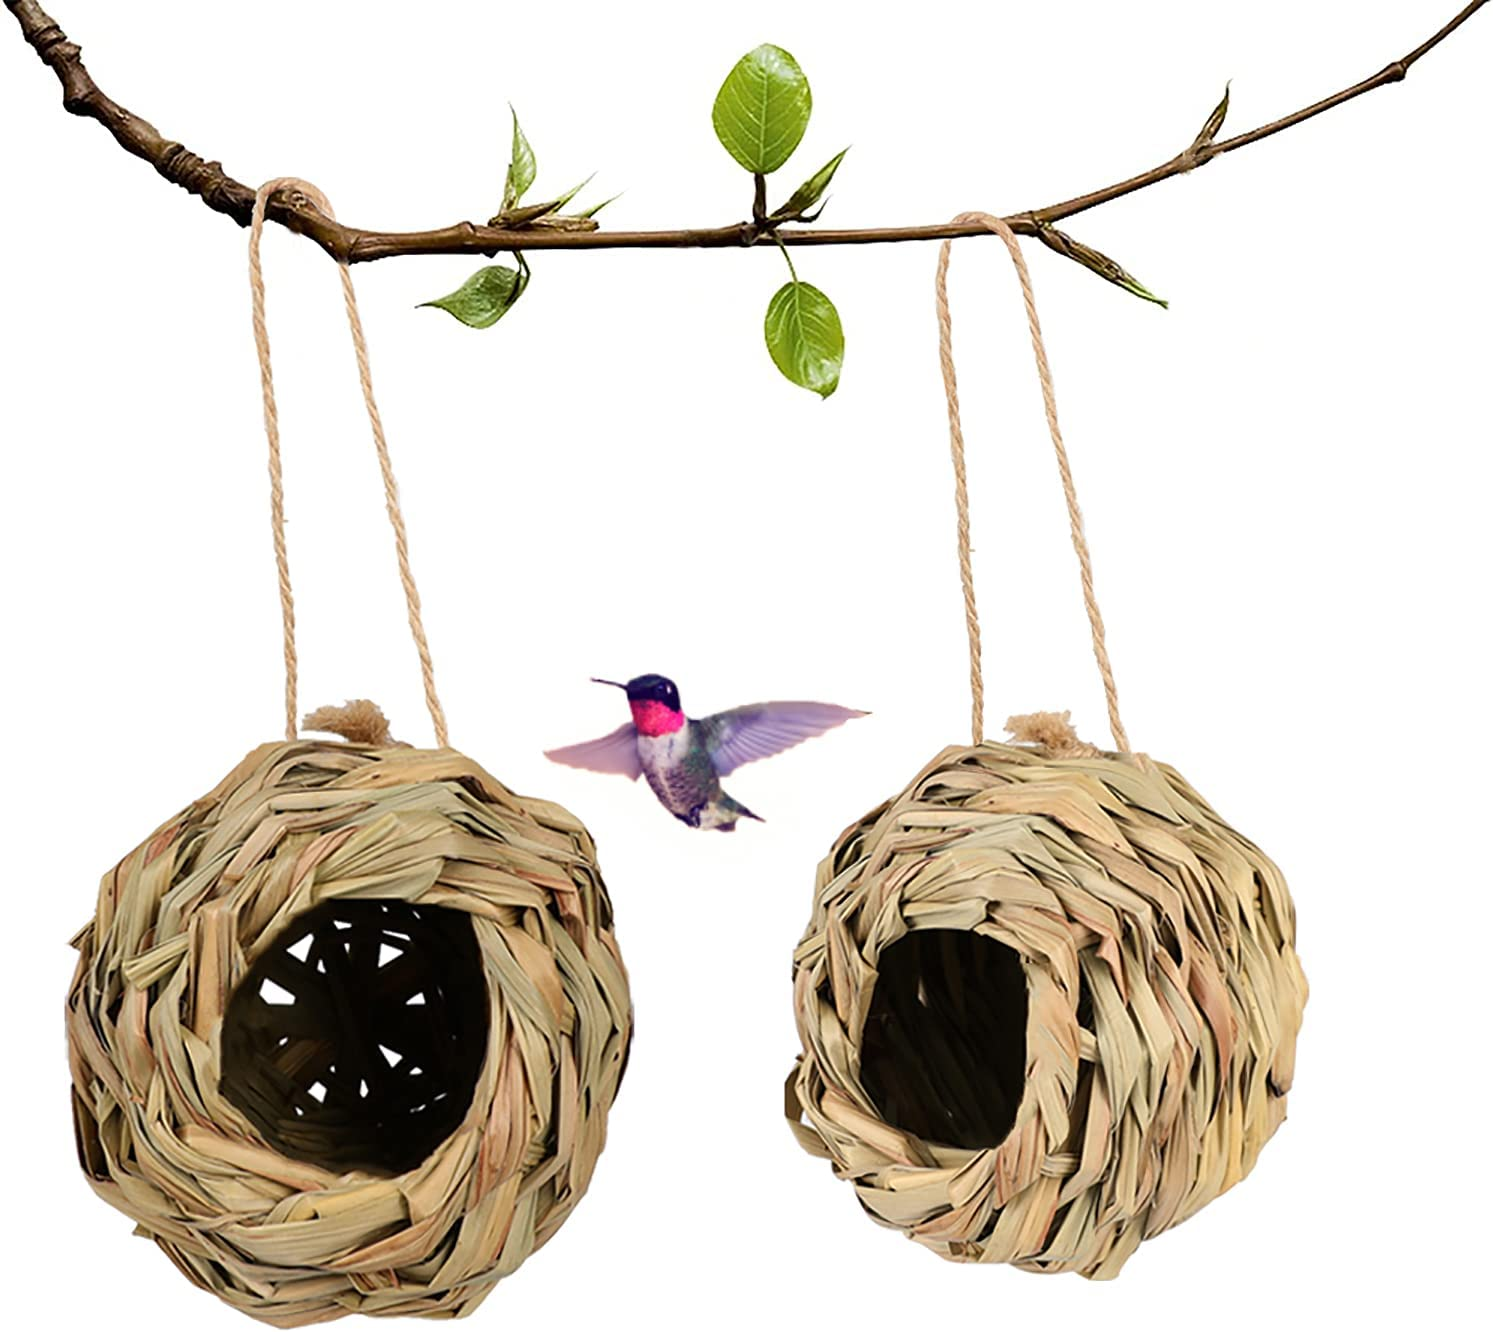 Humming Special Campaign Bird House Max 43% OFF Outdoor Hand Houses for Hummingbird Woven Out